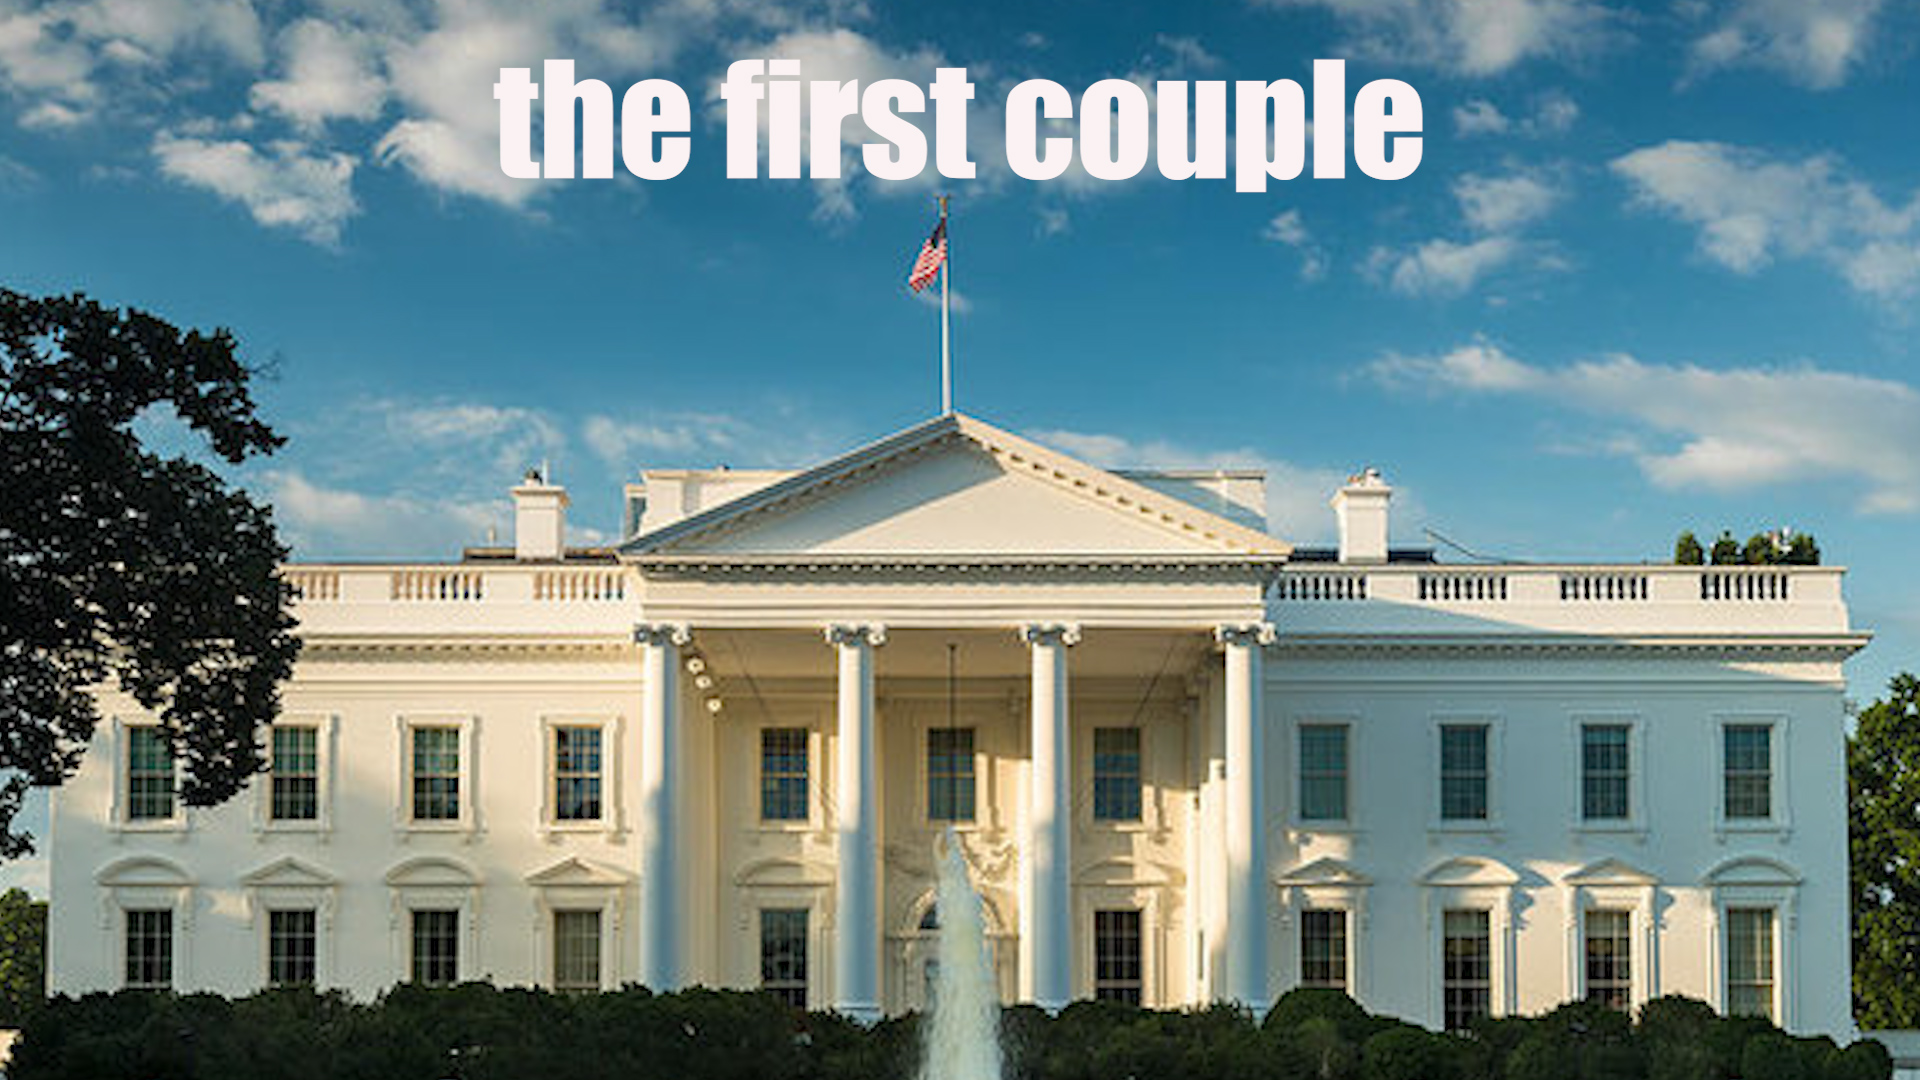 THE FIRST COUPLE  (Romantic Comedy)